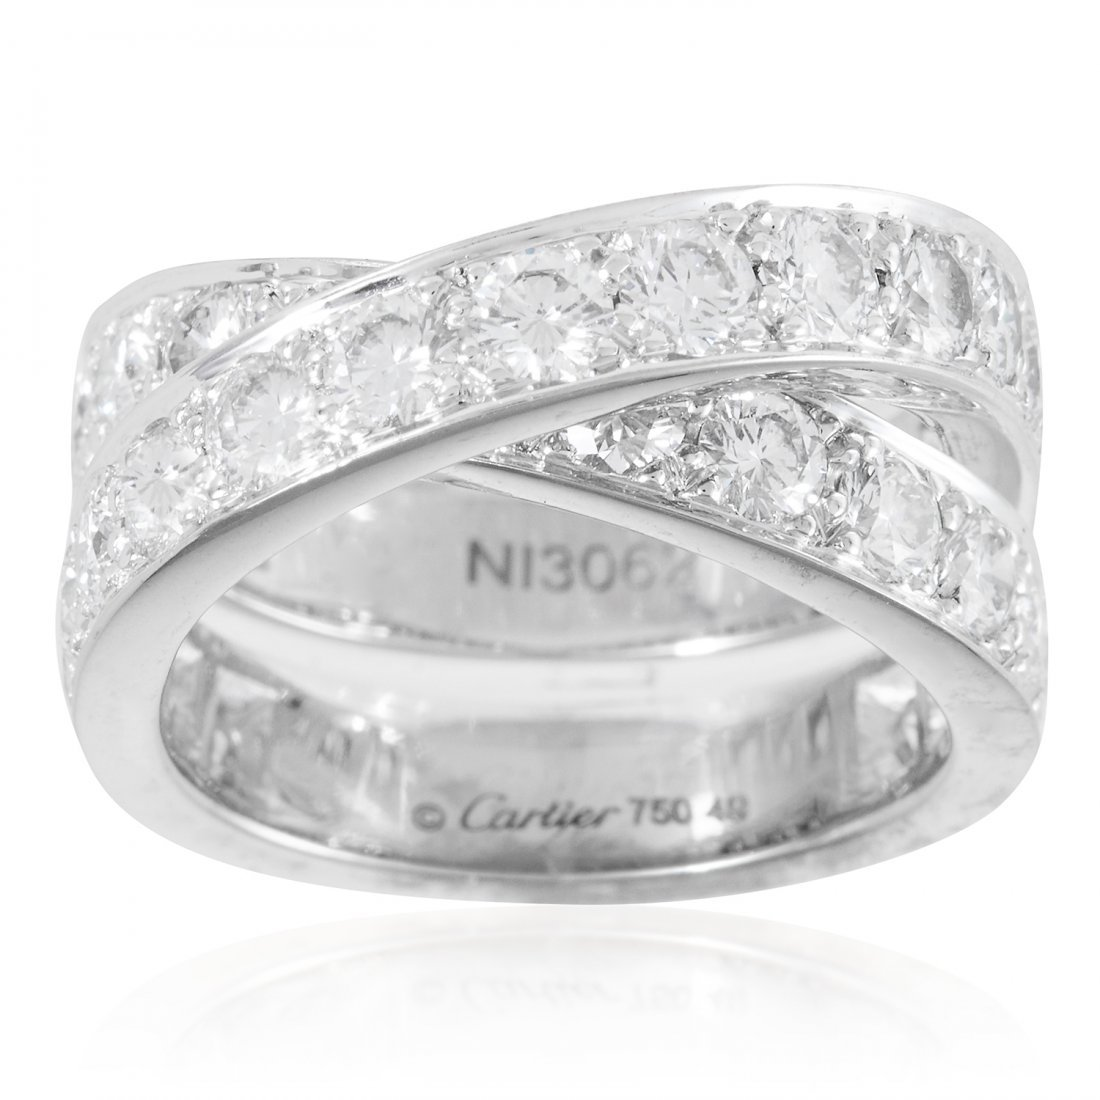 A 2.75 CARAT DIAMOND DRESS RING, CARTIER in 18ct white